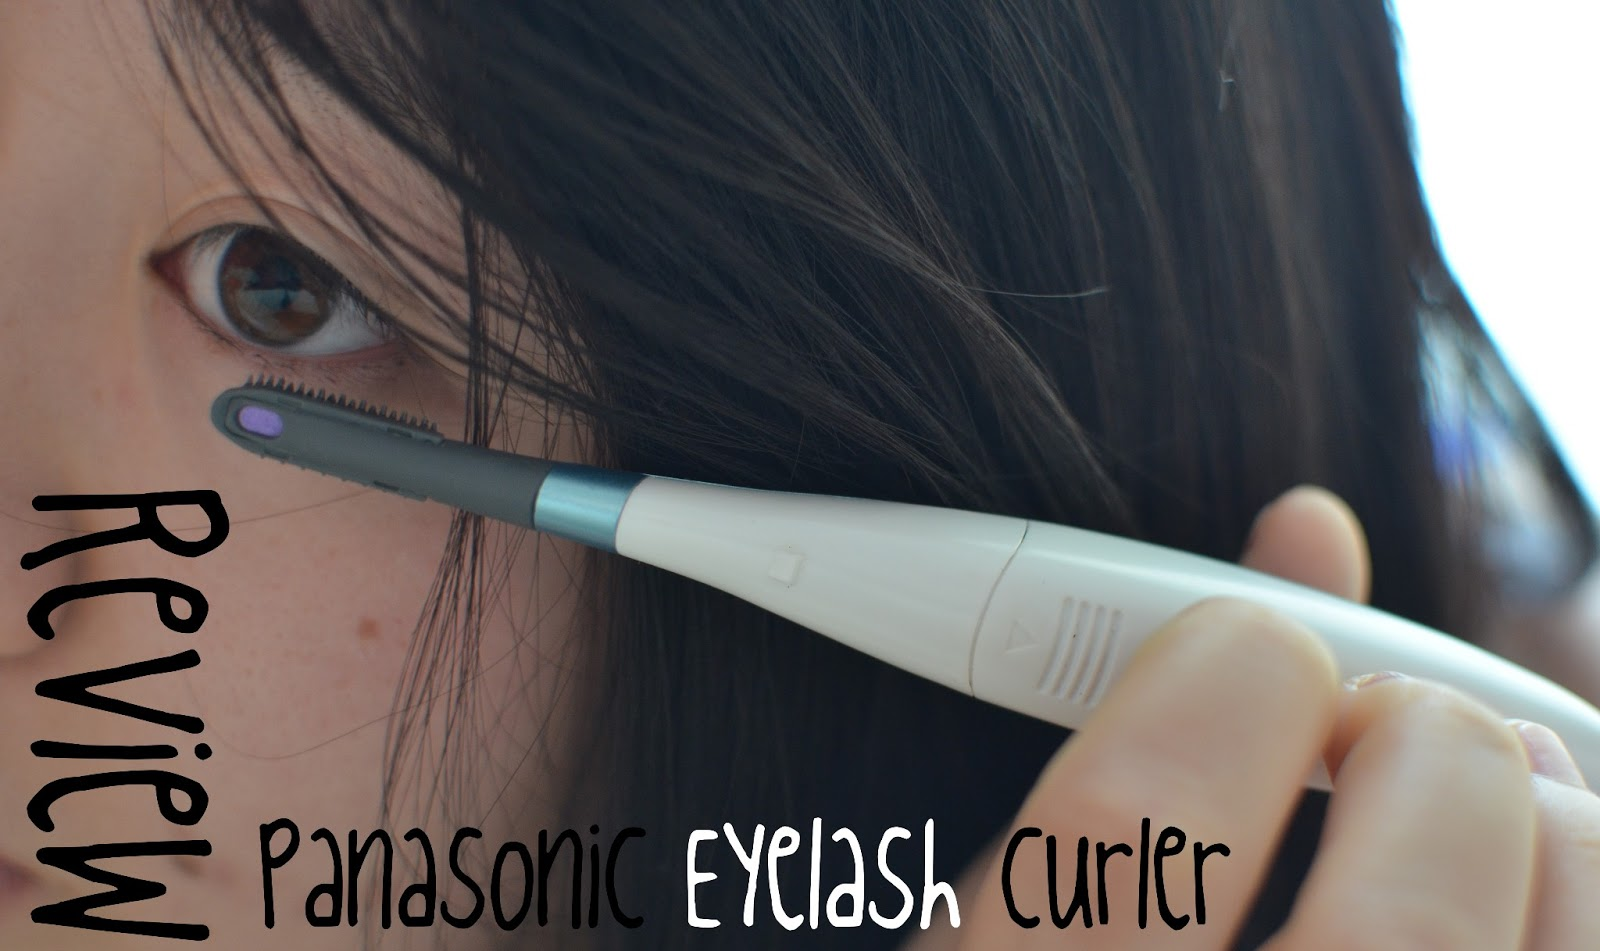 Review By M Panasonic Heated Eyelash Curler Made In Marcelle